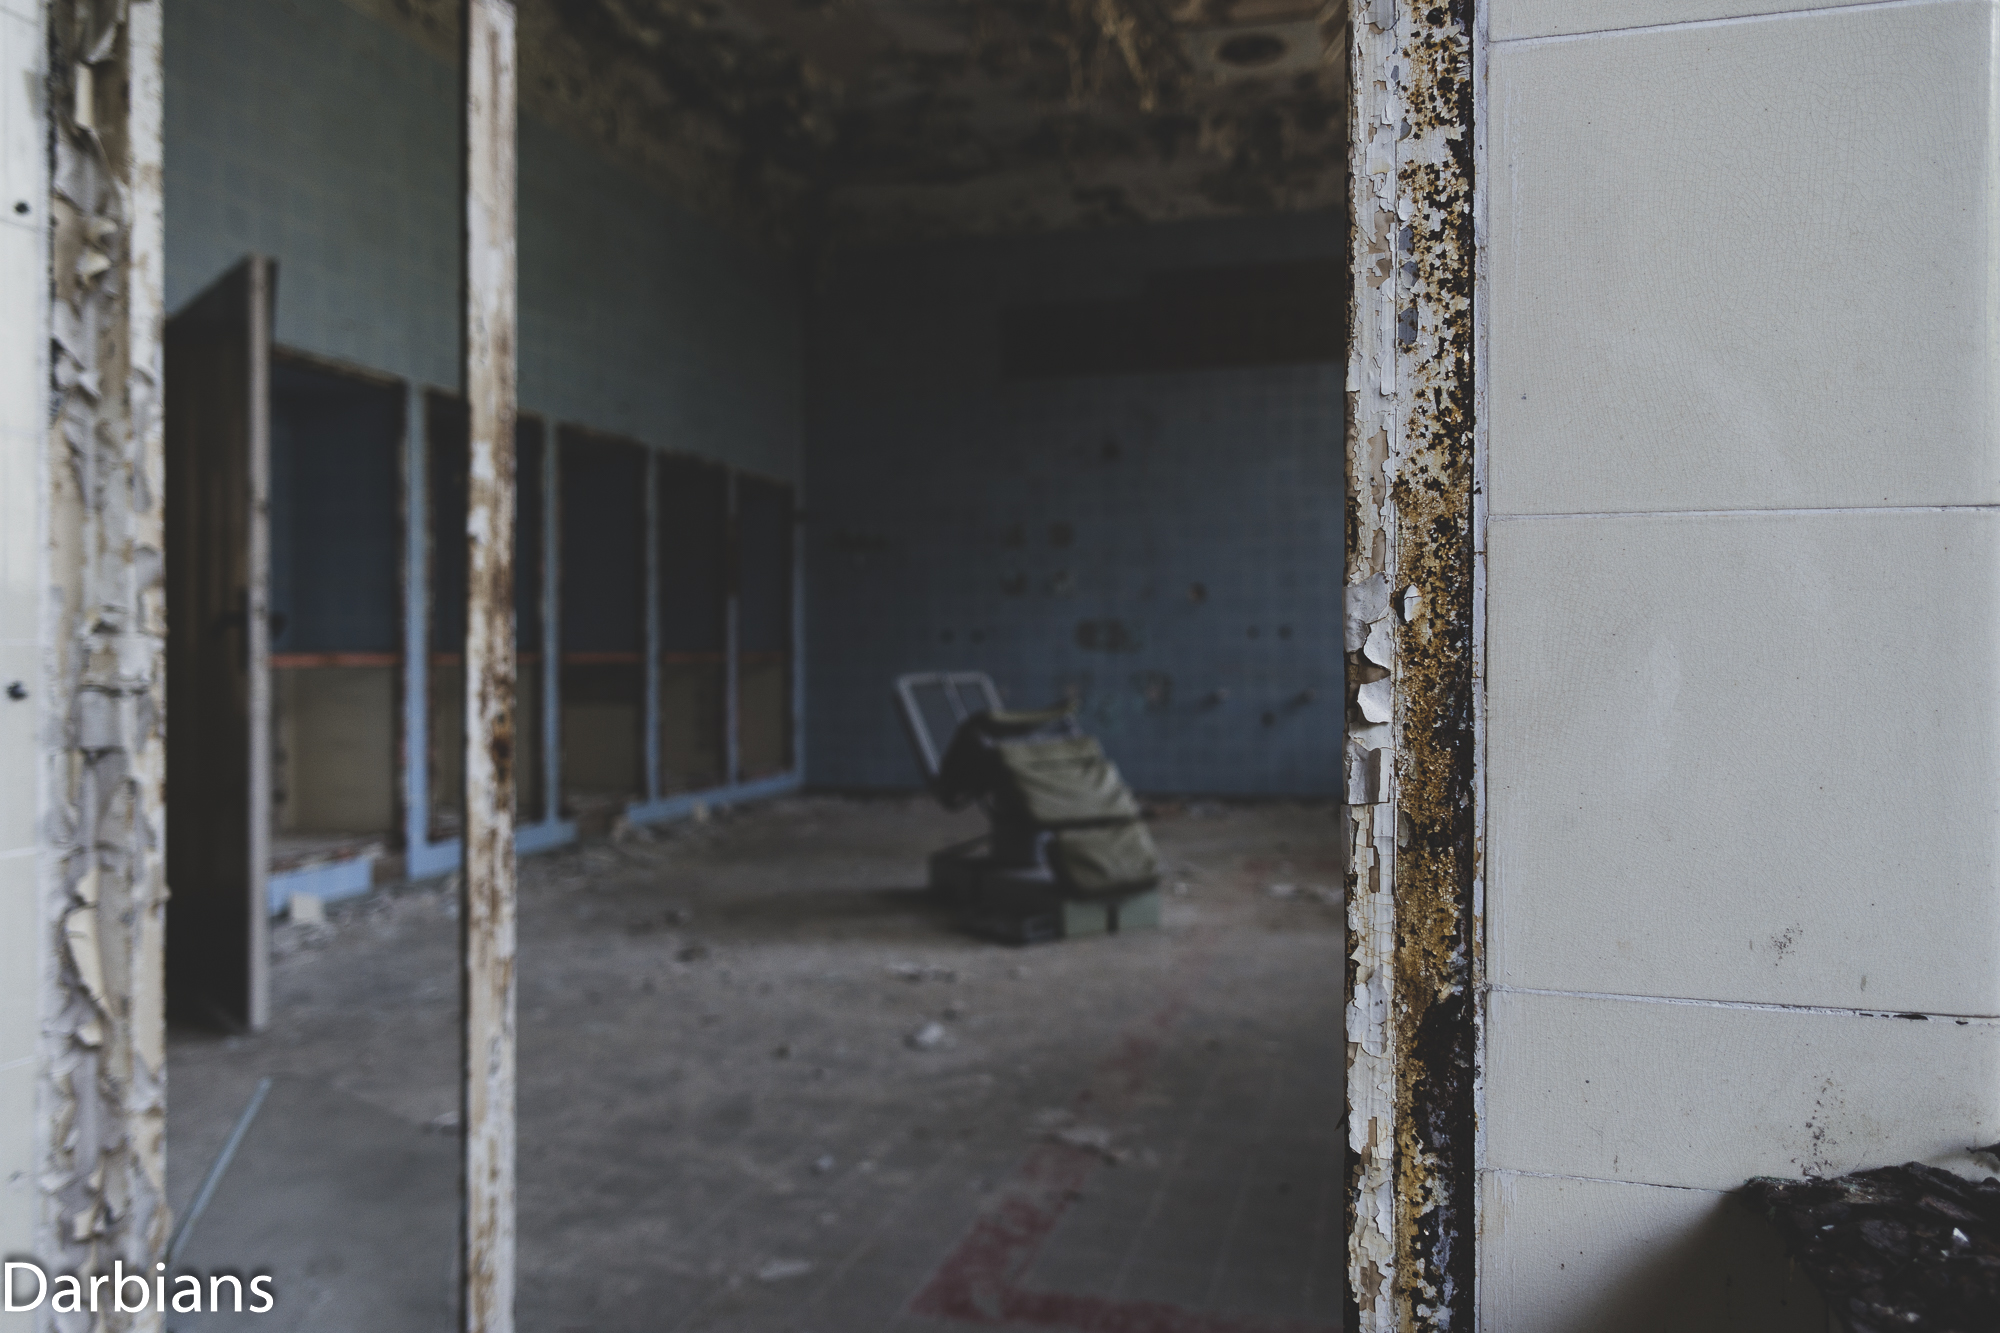 Close up of door frame with operating chair in the background.